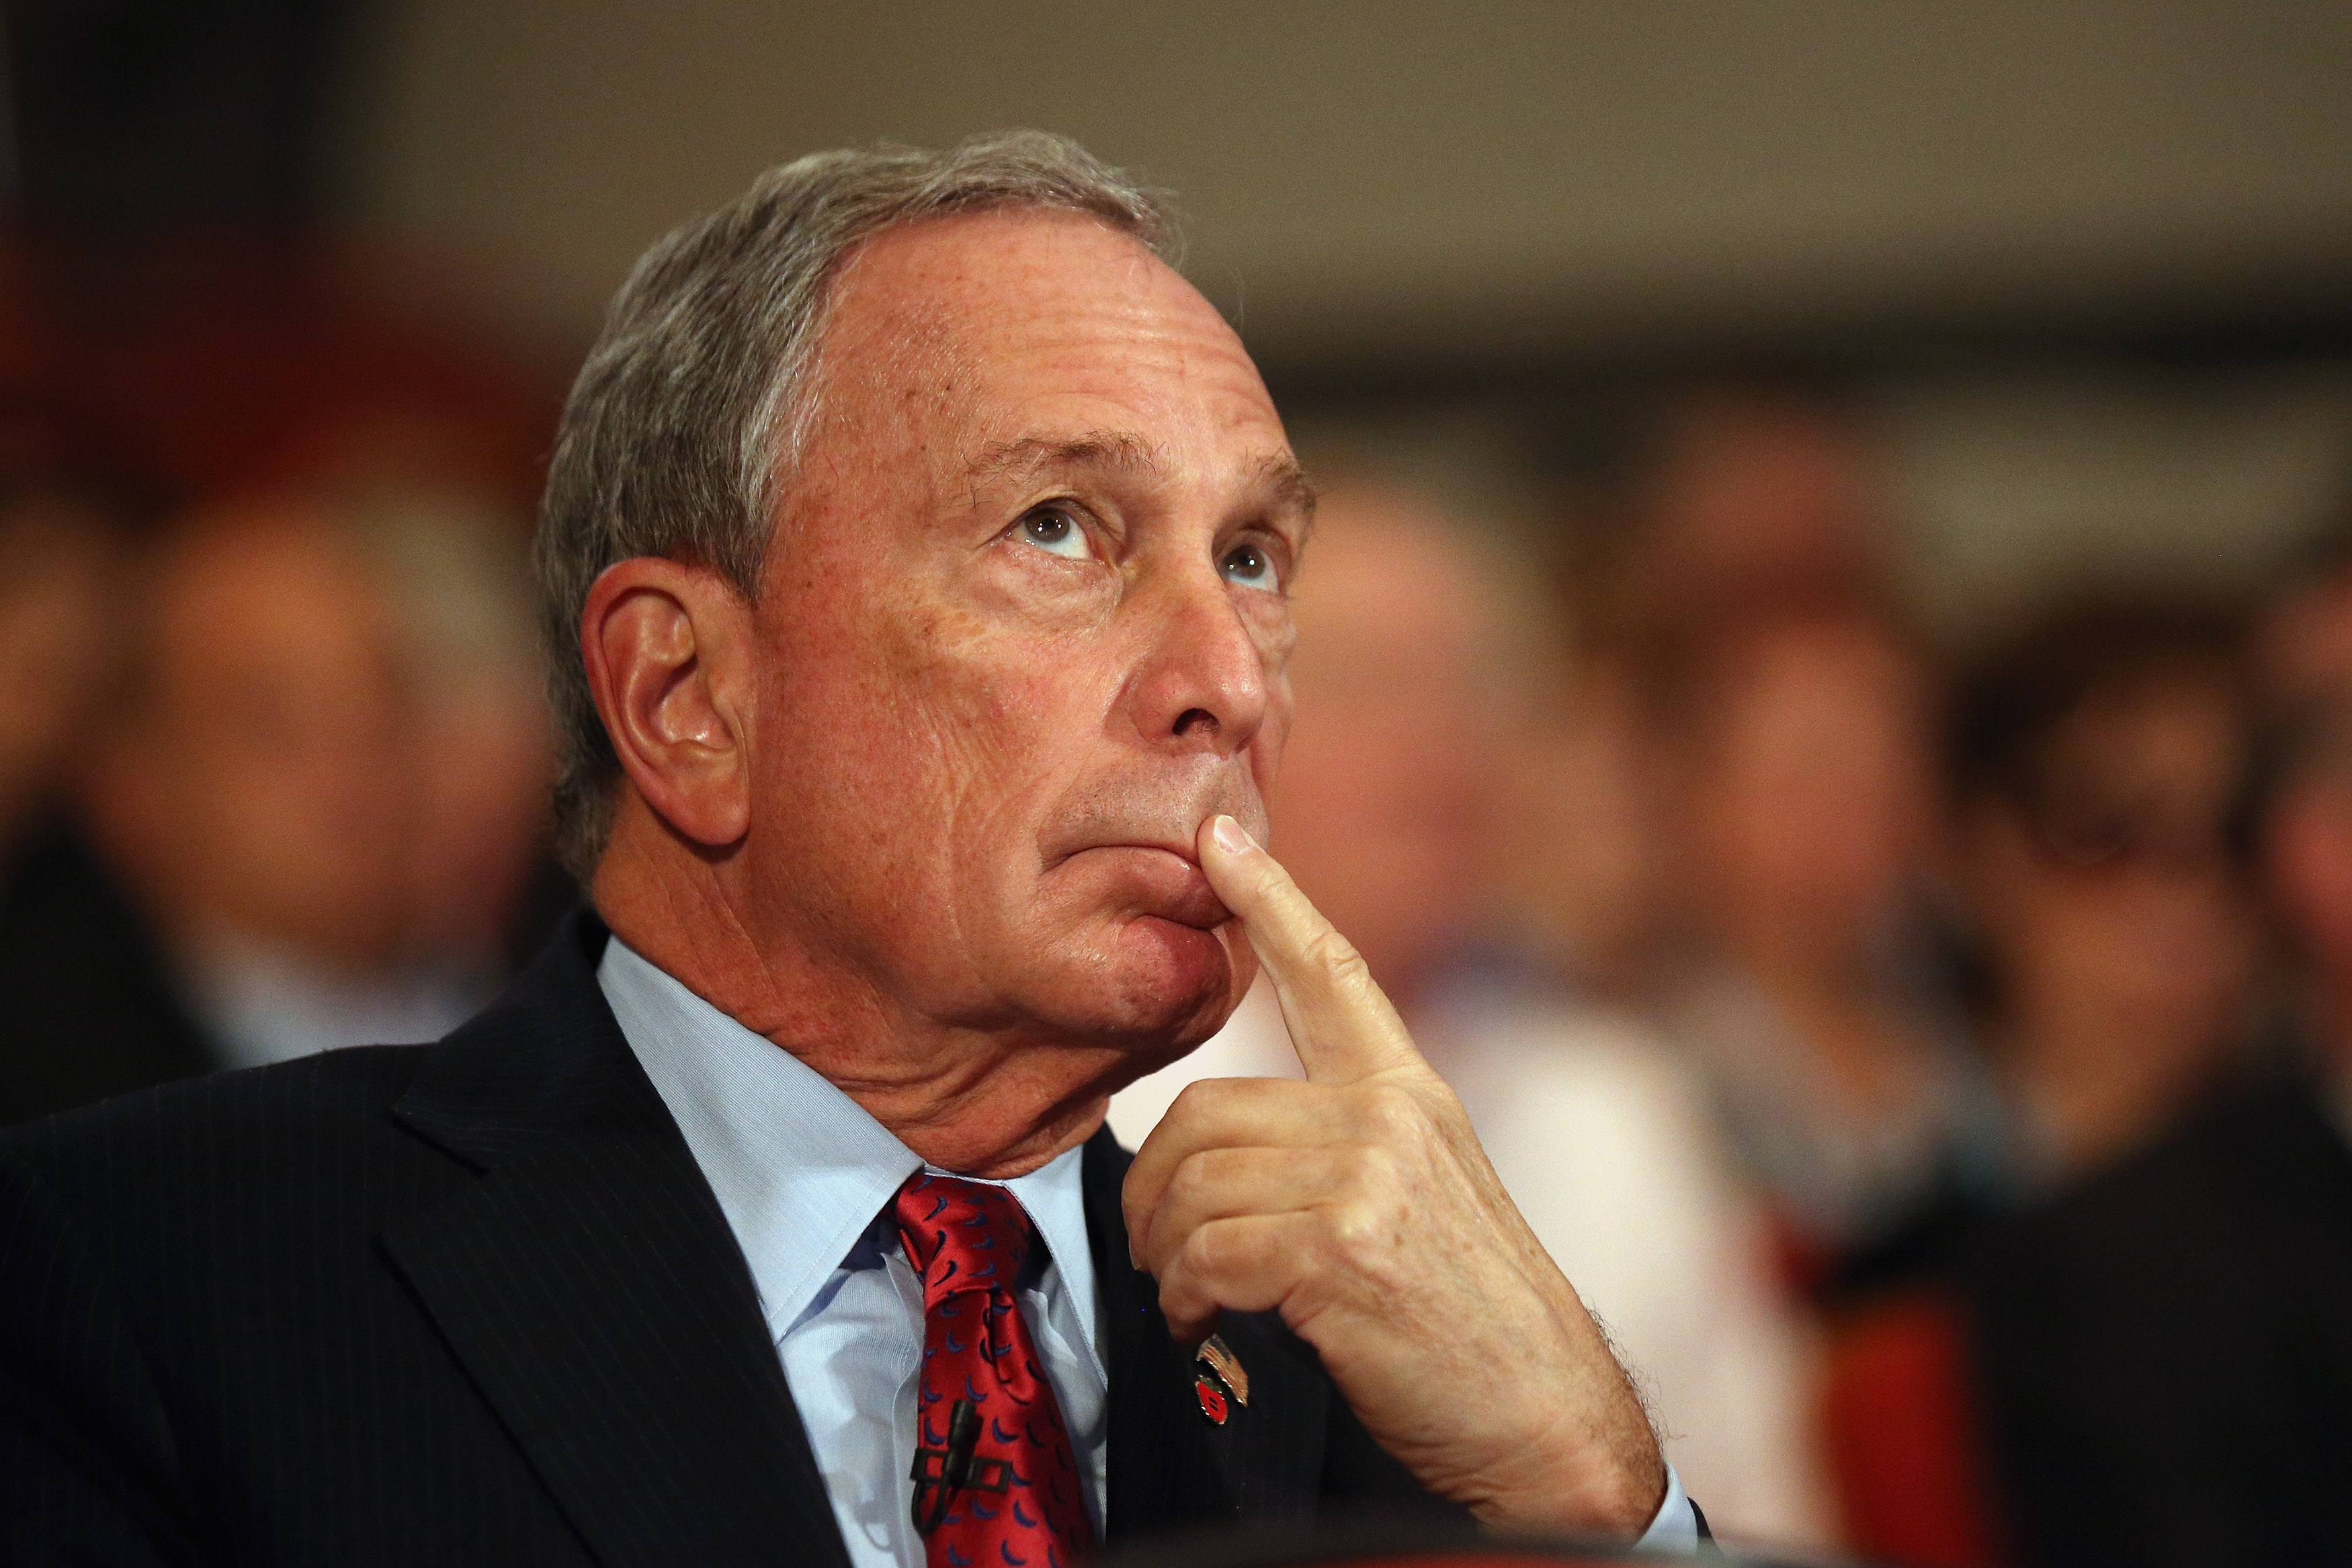 Michael Bloomberg thought about running for president for maybe two seconds.